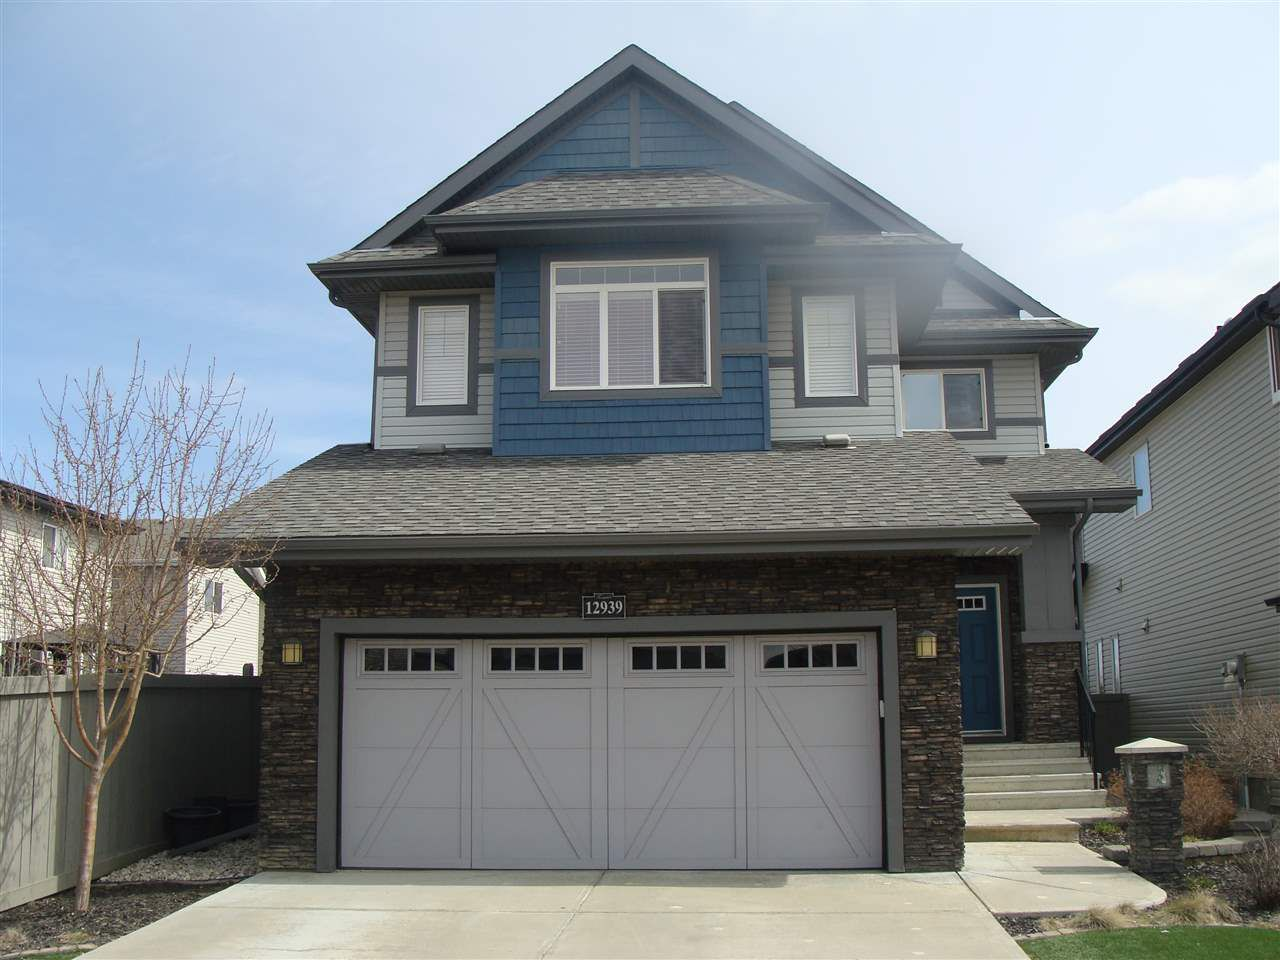 Main Photo: 12939 201 Street in Edmonton: Zone 59 House for sale : MLS®# E4159679